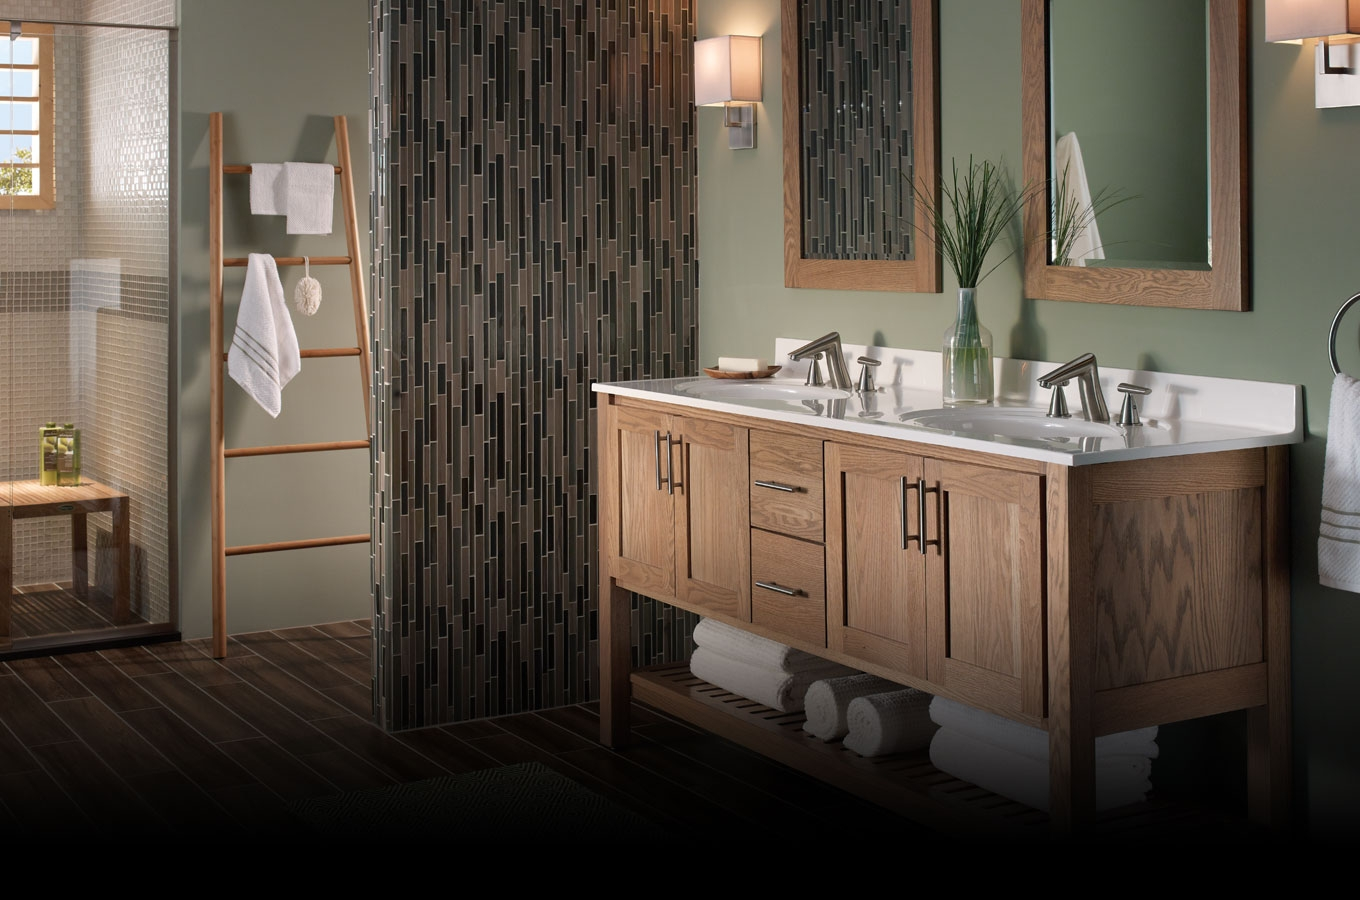 Birch Bathroom Vanity Cabinets1360 X 900